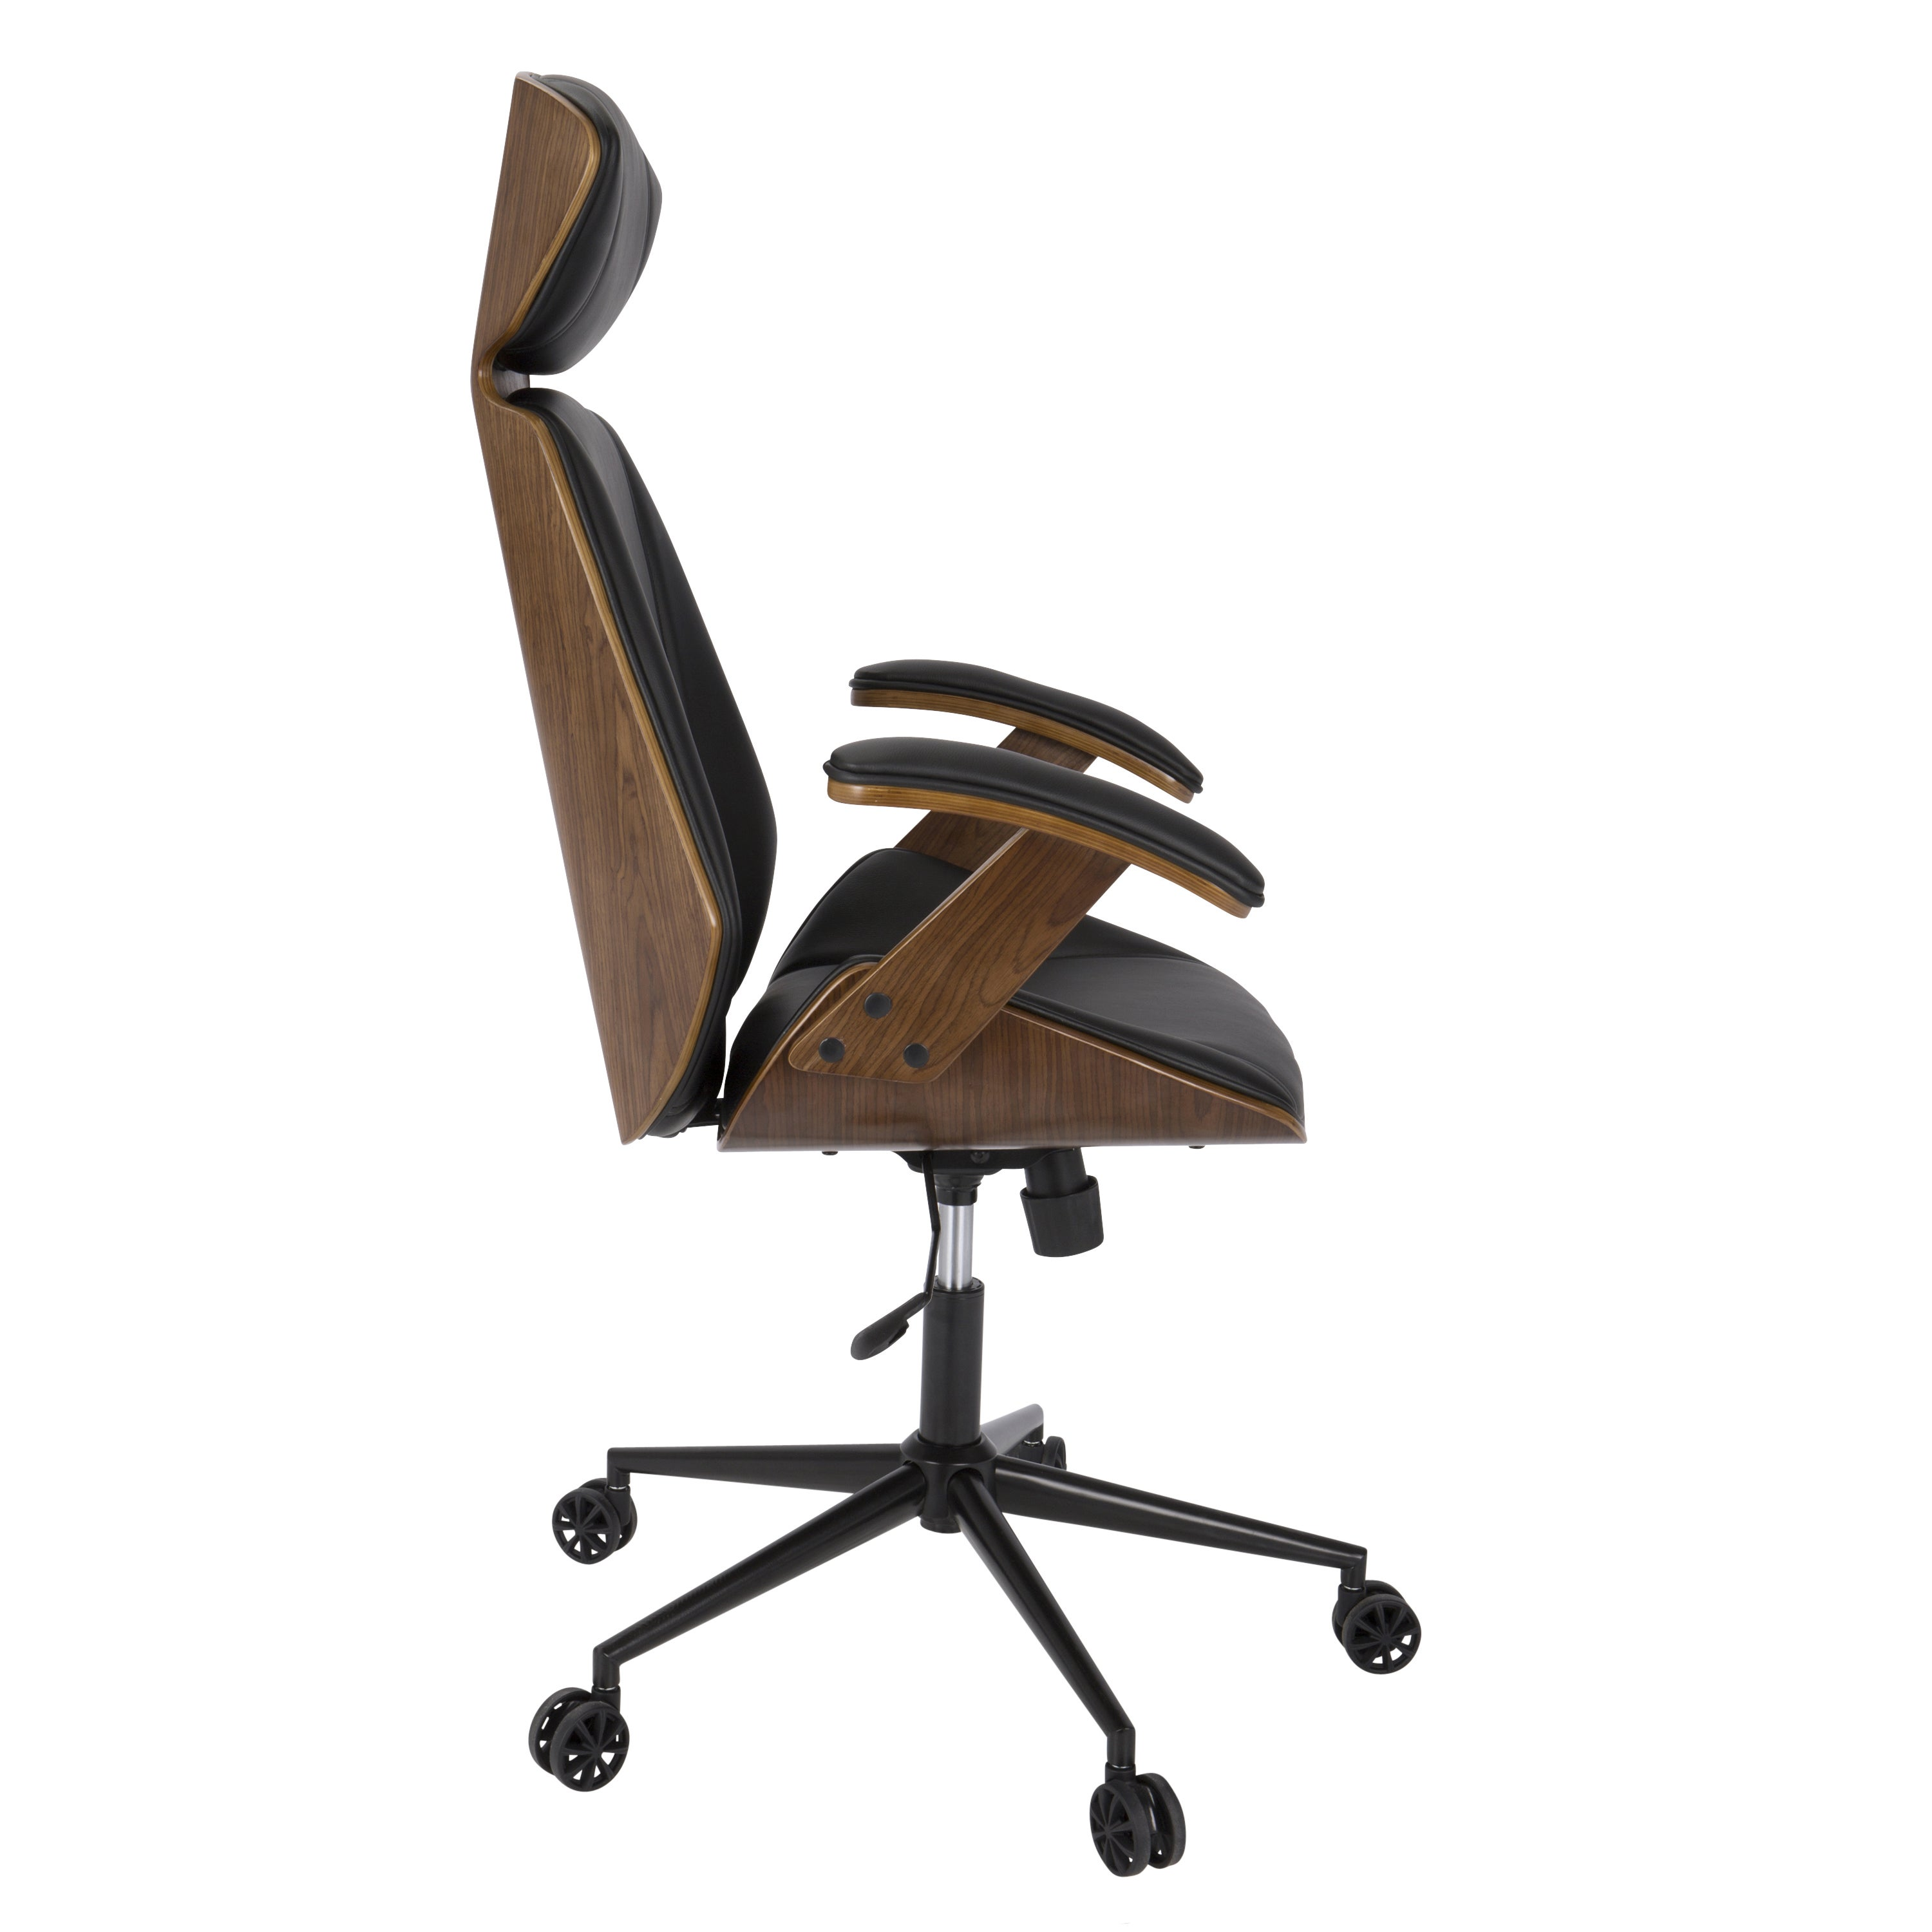 modern wood office chair. Spectre Mid-Century Modern Walnut Wood Office Chair - Free Shipping Today Overstock 19064198